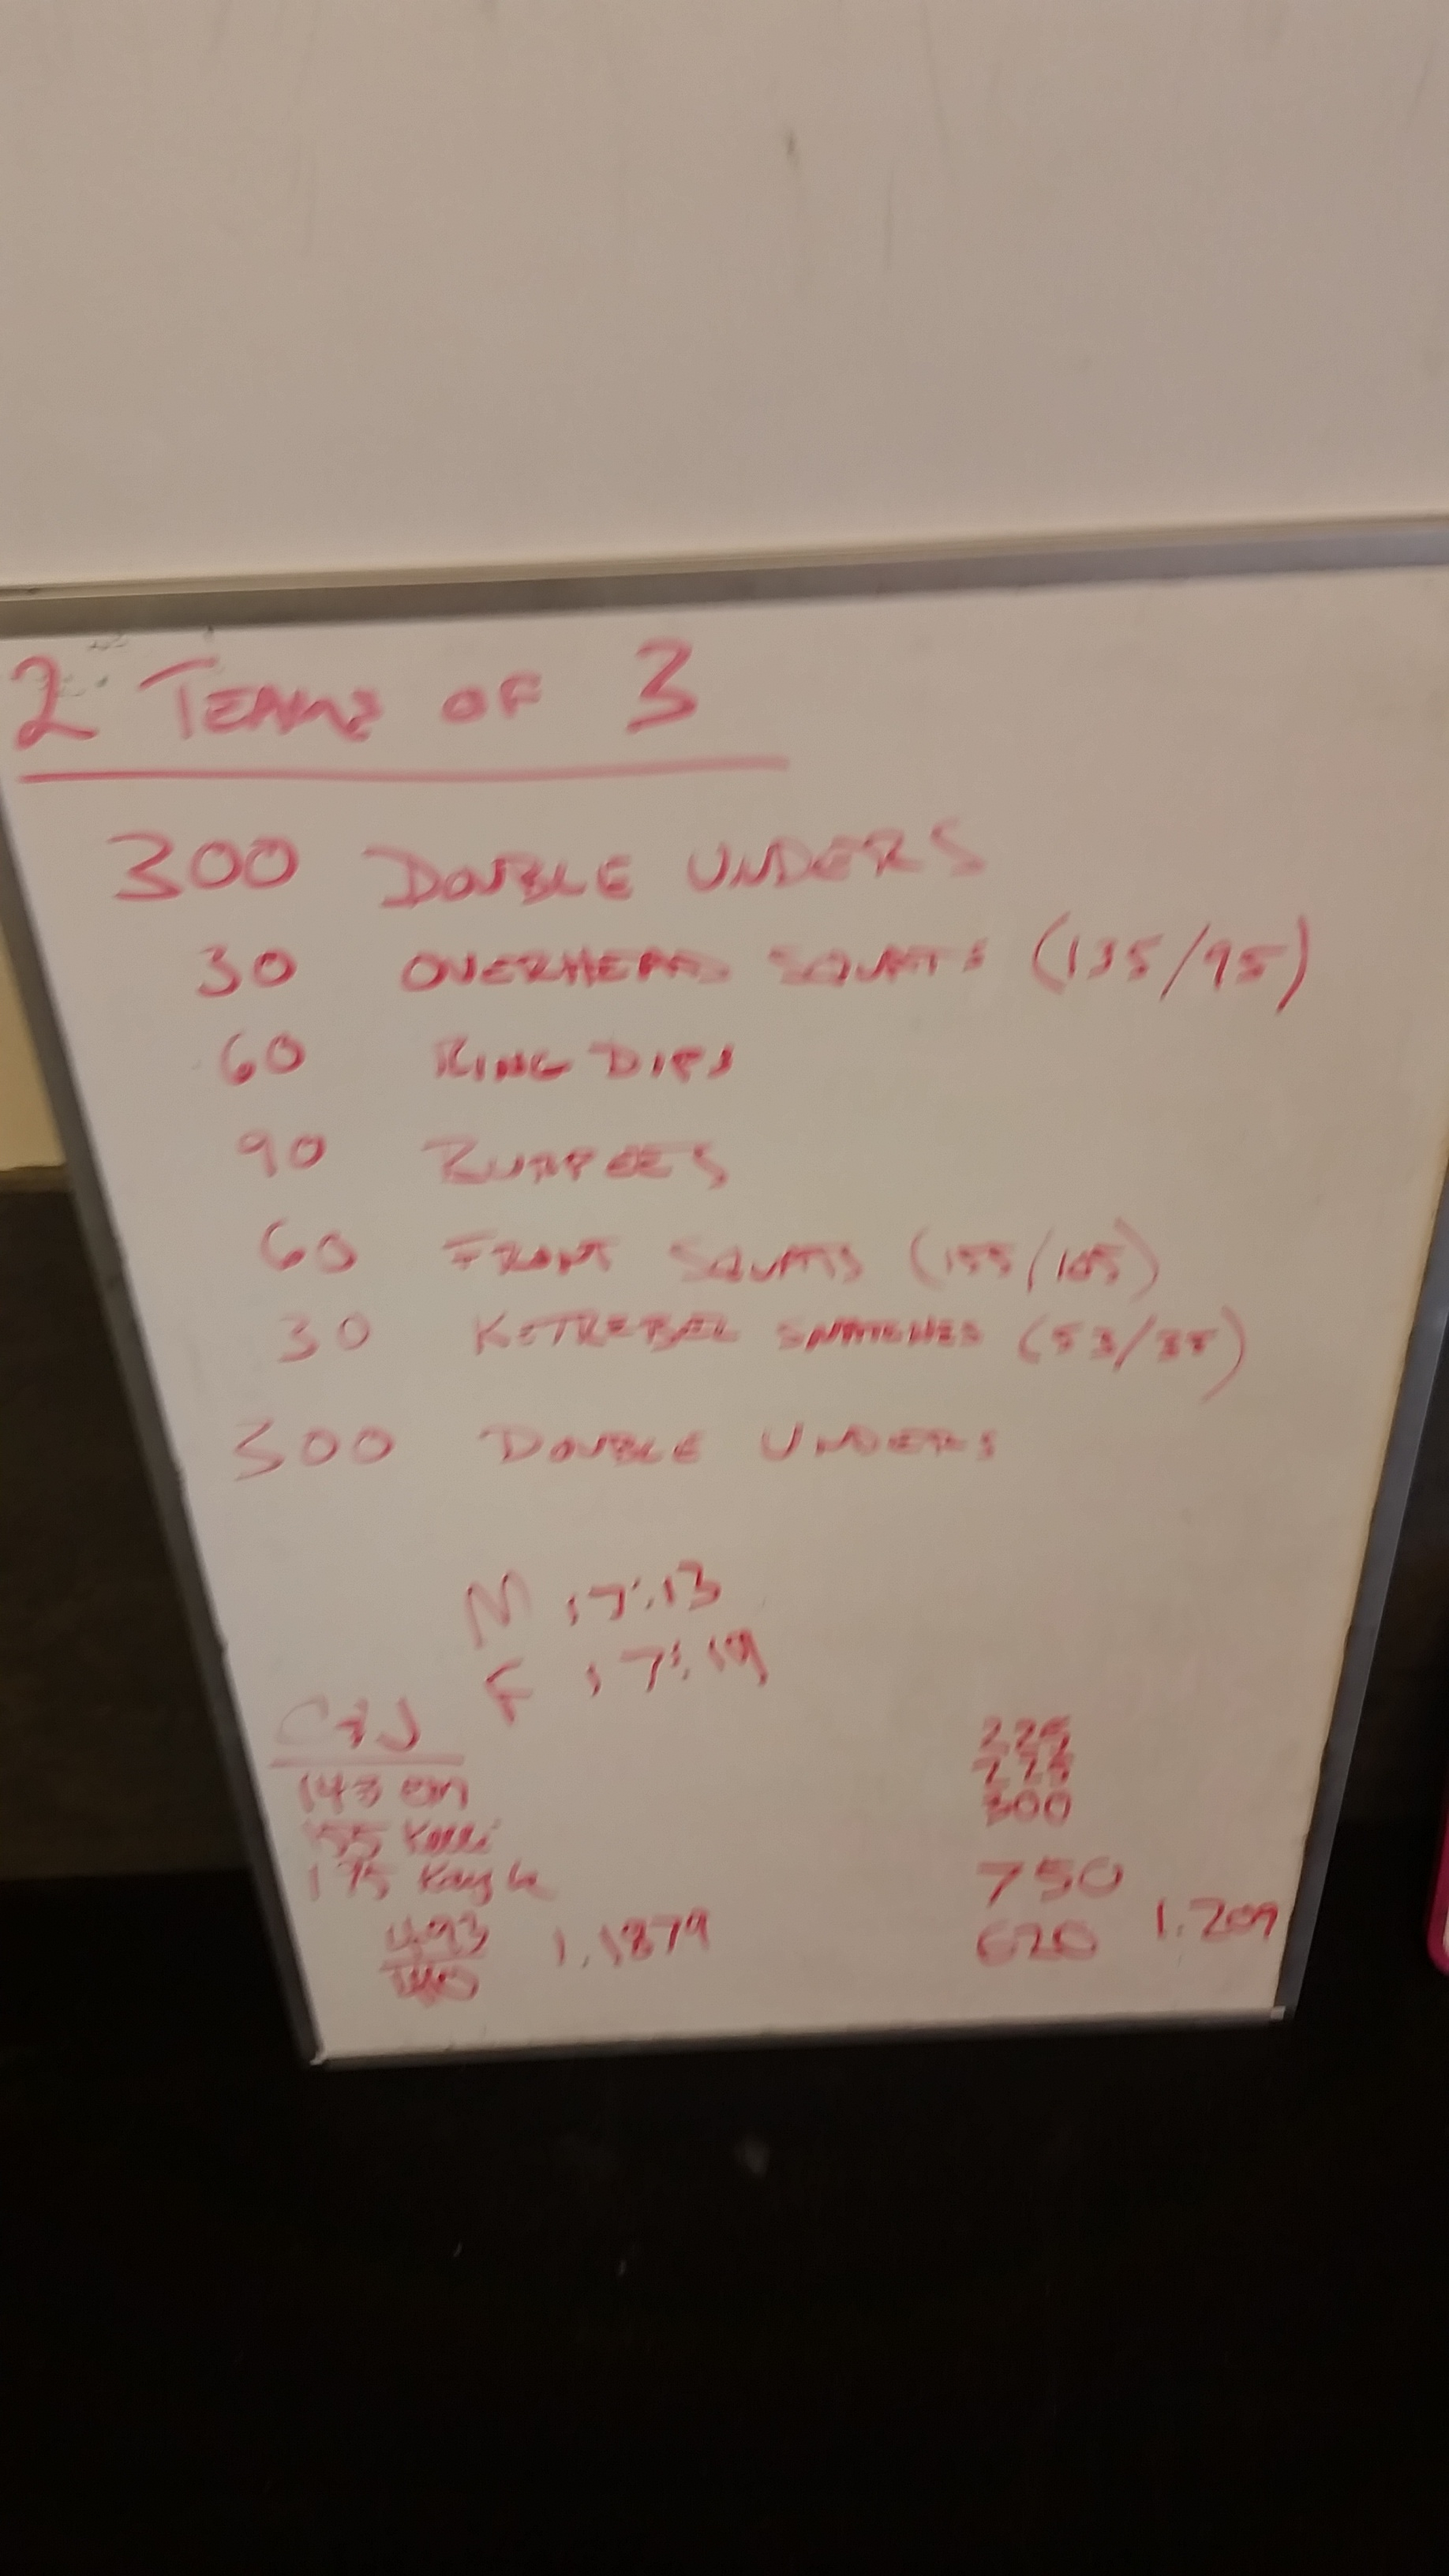 20160102 CrossFit Craft TEAM WORKOUT Double Unders Overhead Squats Ring Dips Burpees Front Squats Kettlebell Swings MAX Clean and Jerks